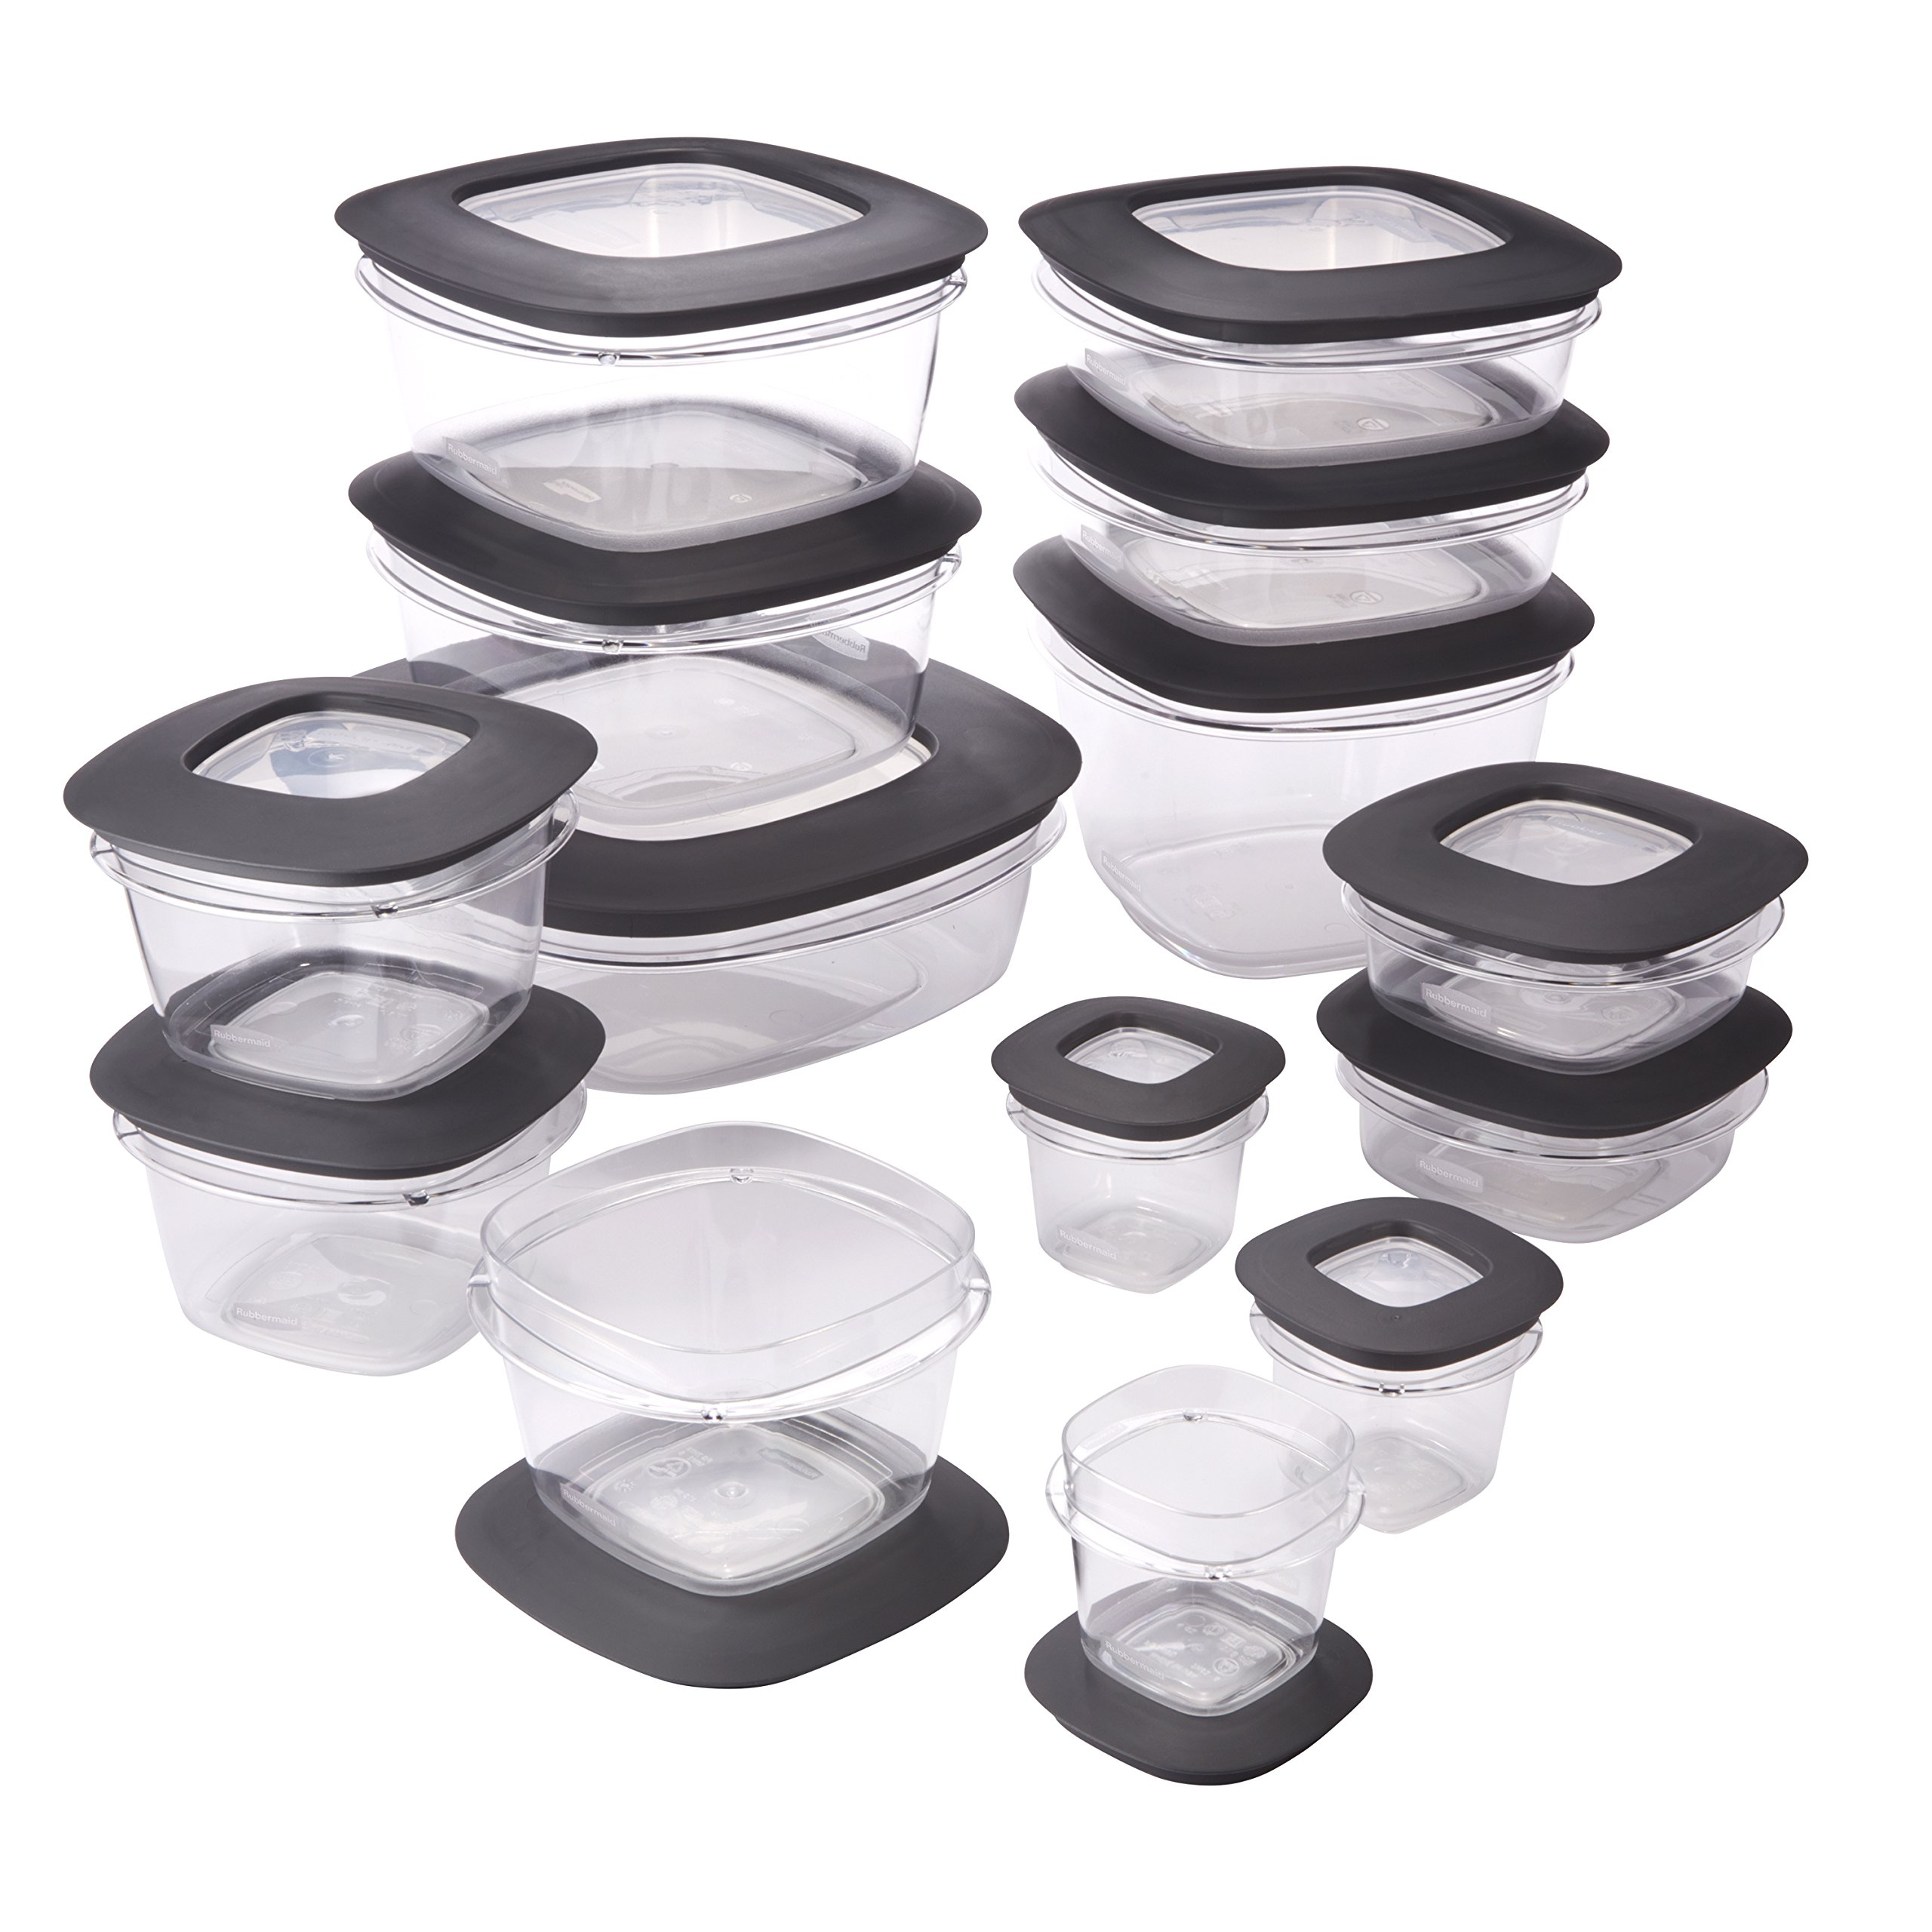 Rubbermaid Premier Easy Find Lids Food Storage Containers, Gray, Set of 28 1951294